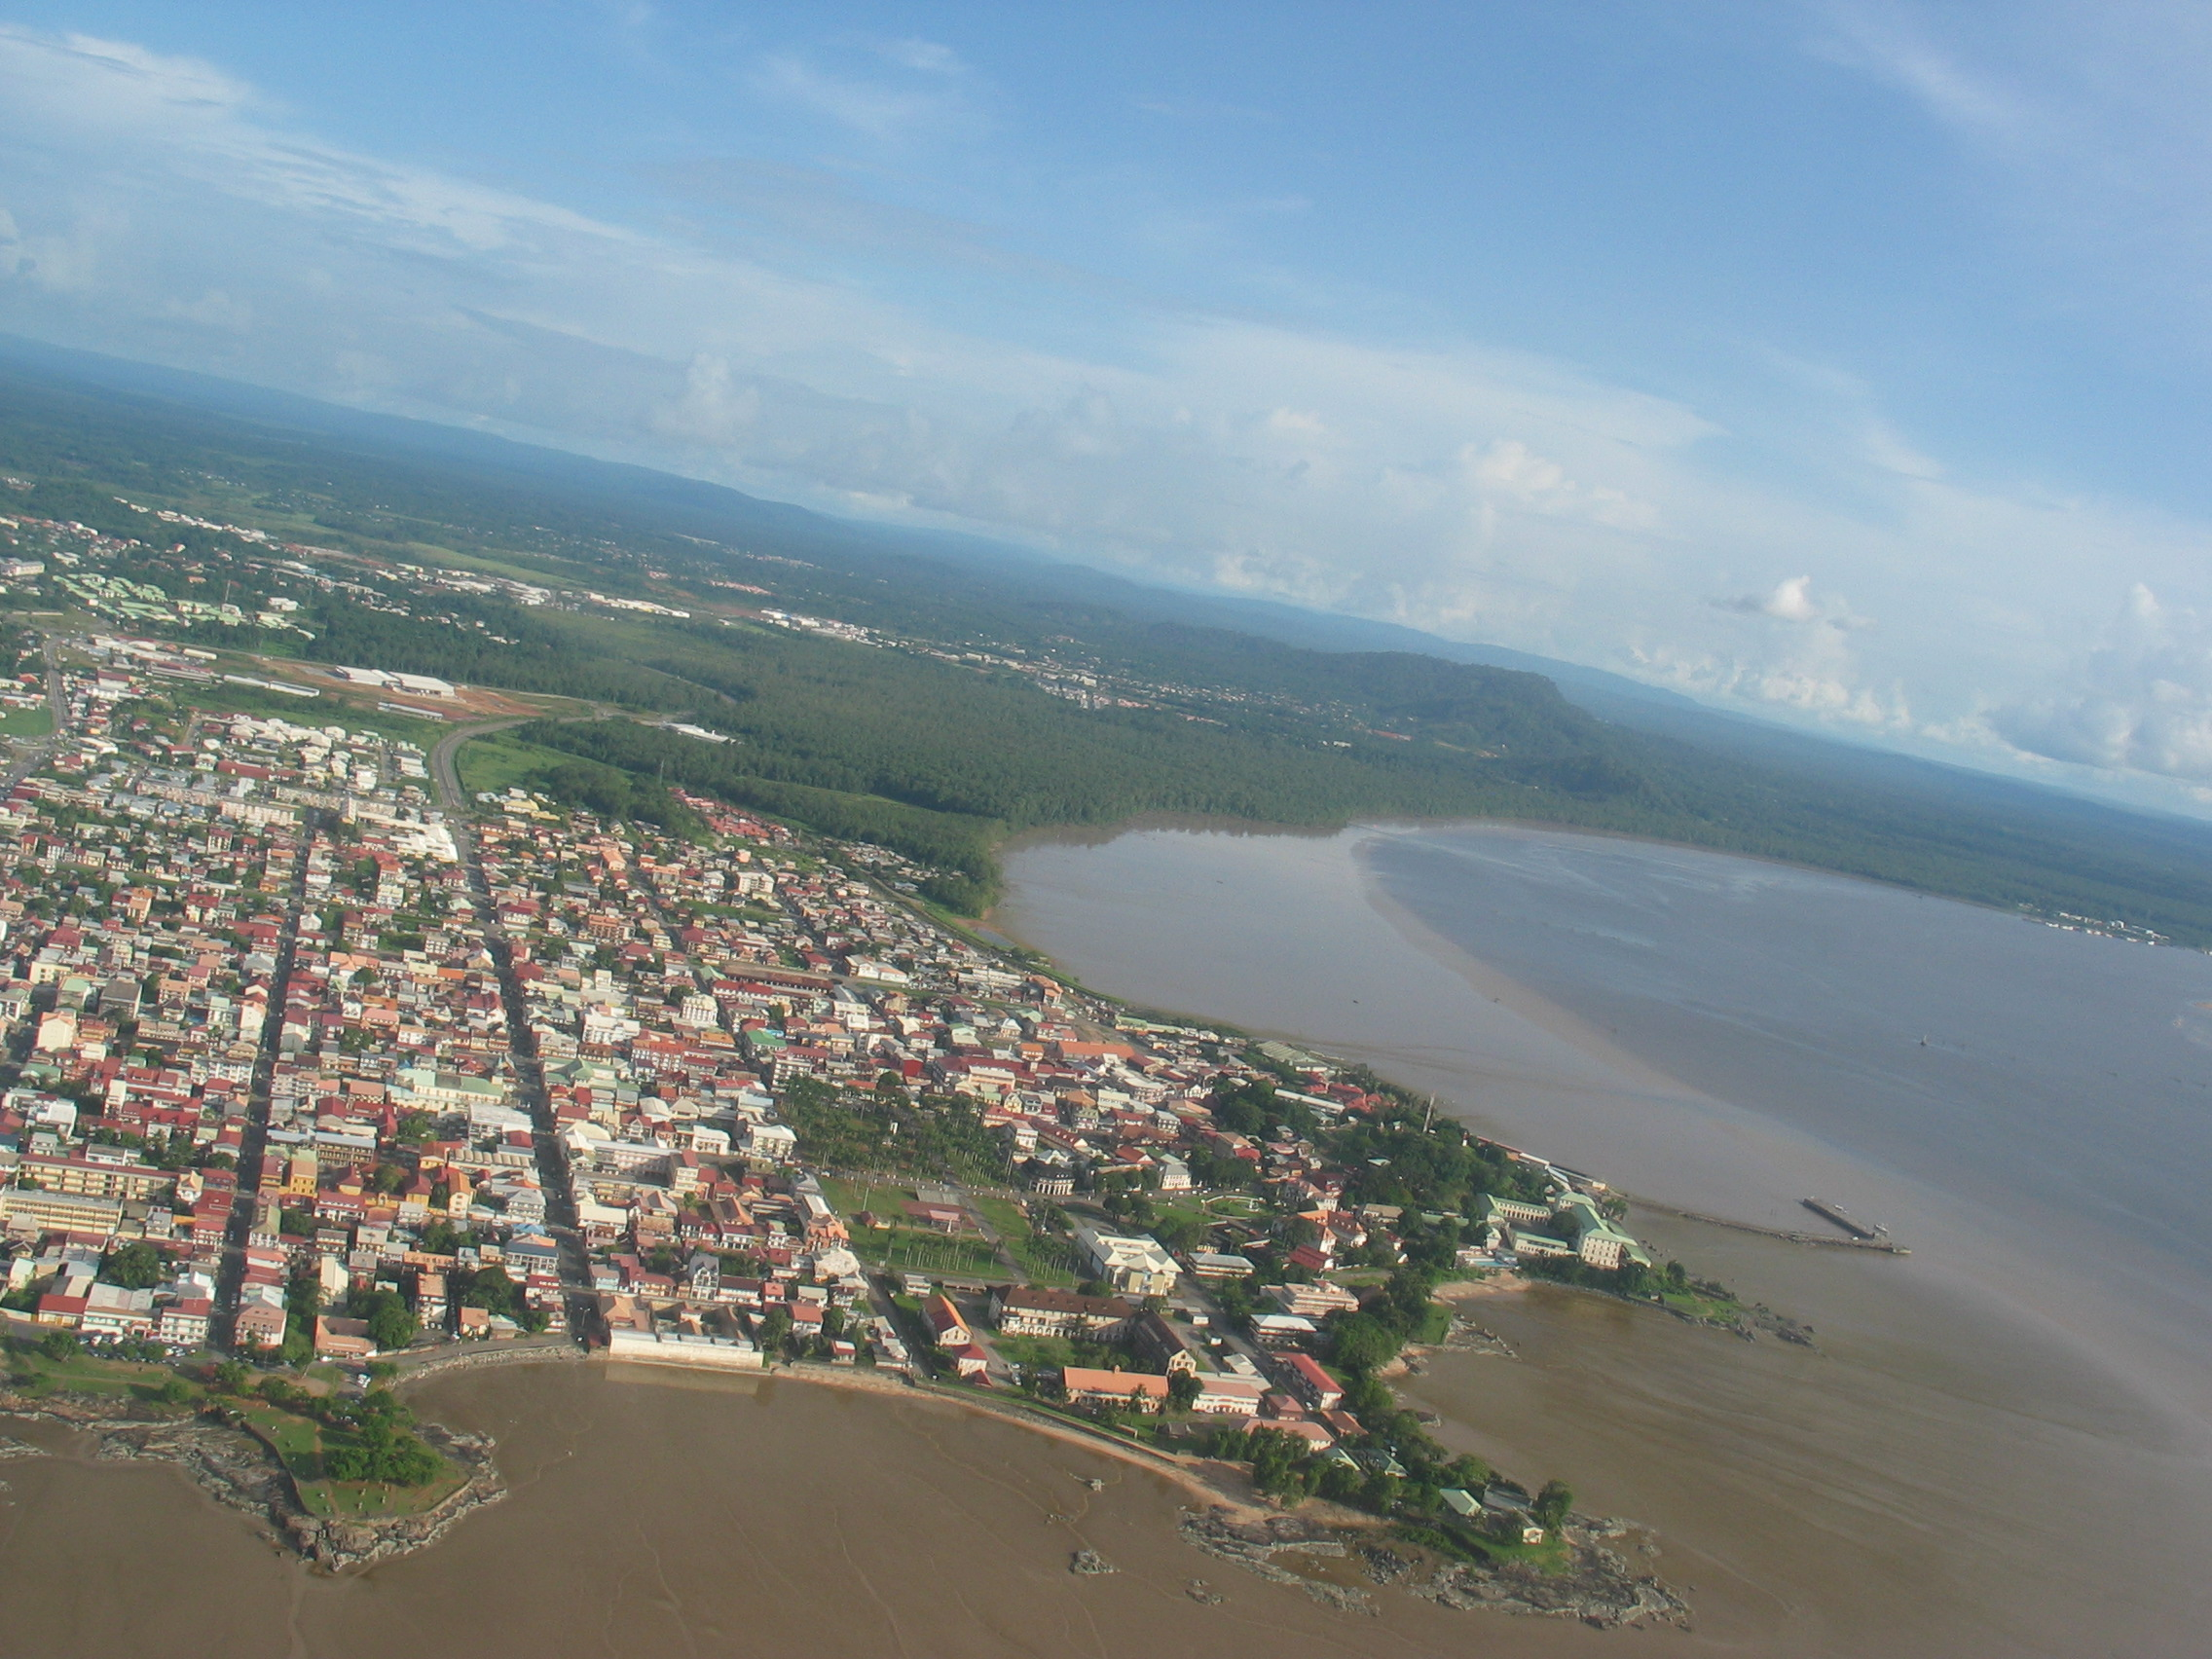 Click photo to download. Caption: A view of Cayenne, the capital of French Guiana. Credit: Raybx973/Wikimedia Commons.